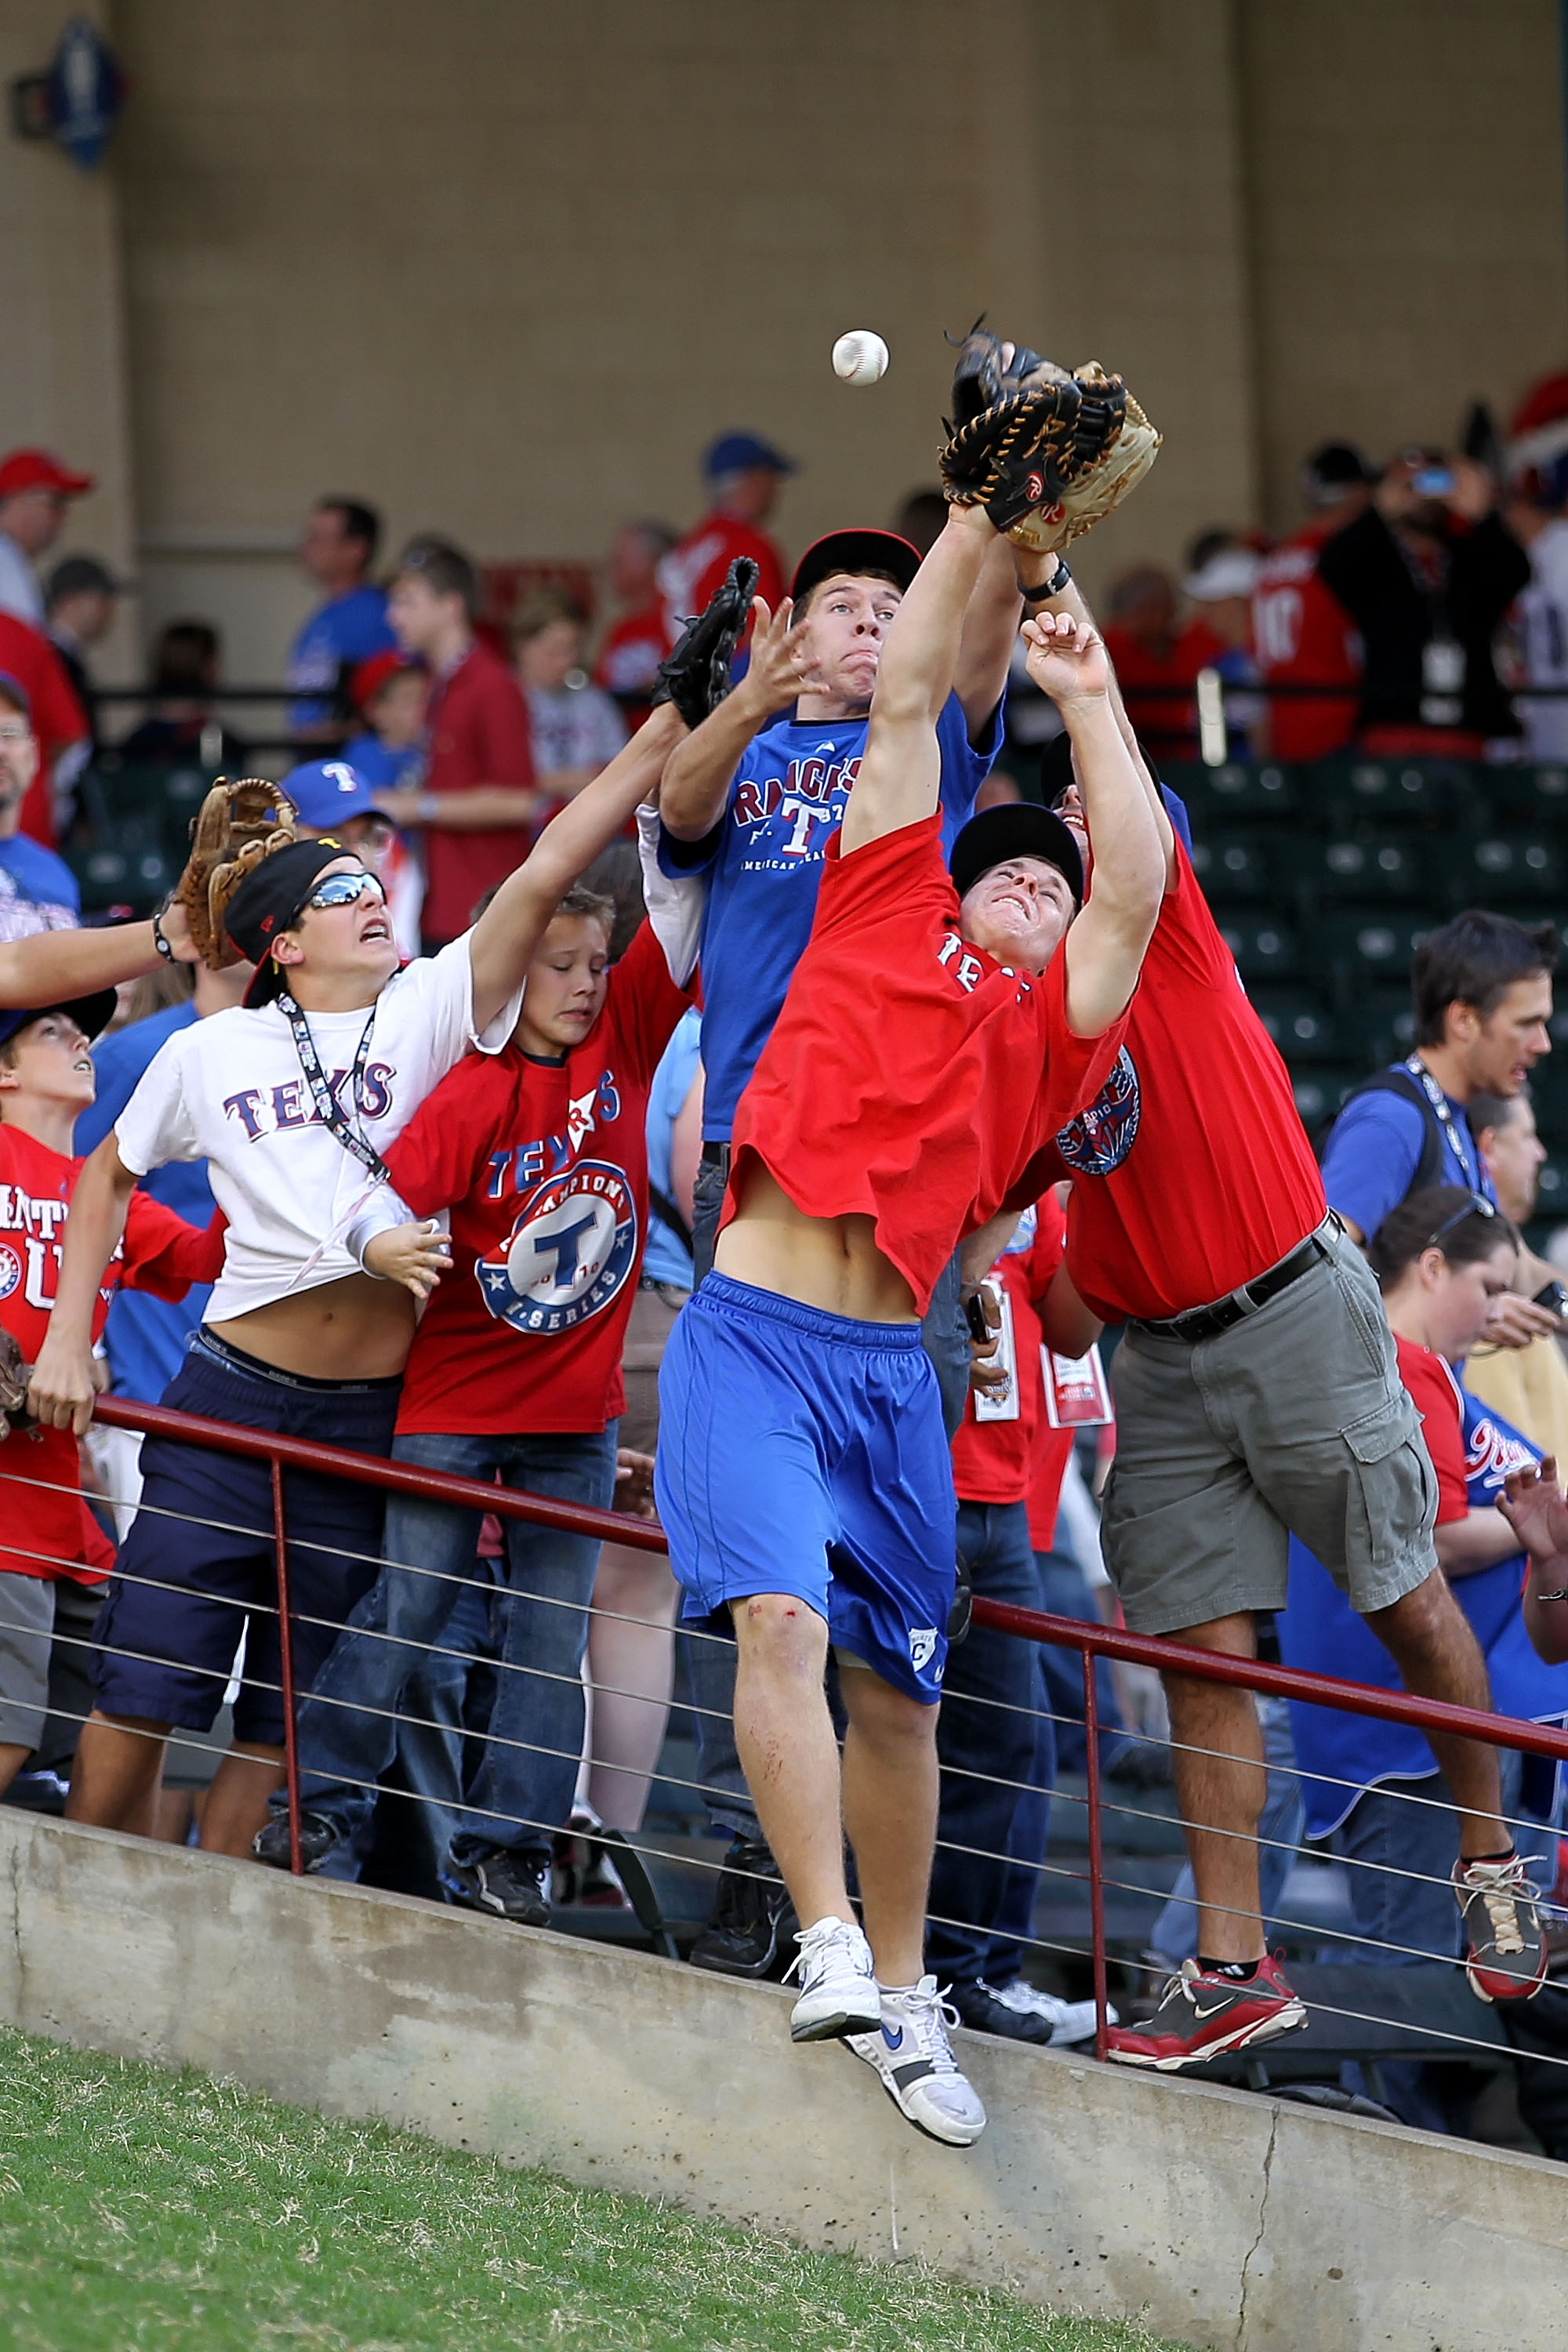 ARLINGTON, TX - NOVEMBER 01:  Fans attempt to catch home run balls during batting practice prior to the Texas Rangers playing against the San Francisco Giants in Game Five of the 2010 MLB World Series at Rangers Ballpark in Arlington on November 1, 2010 i